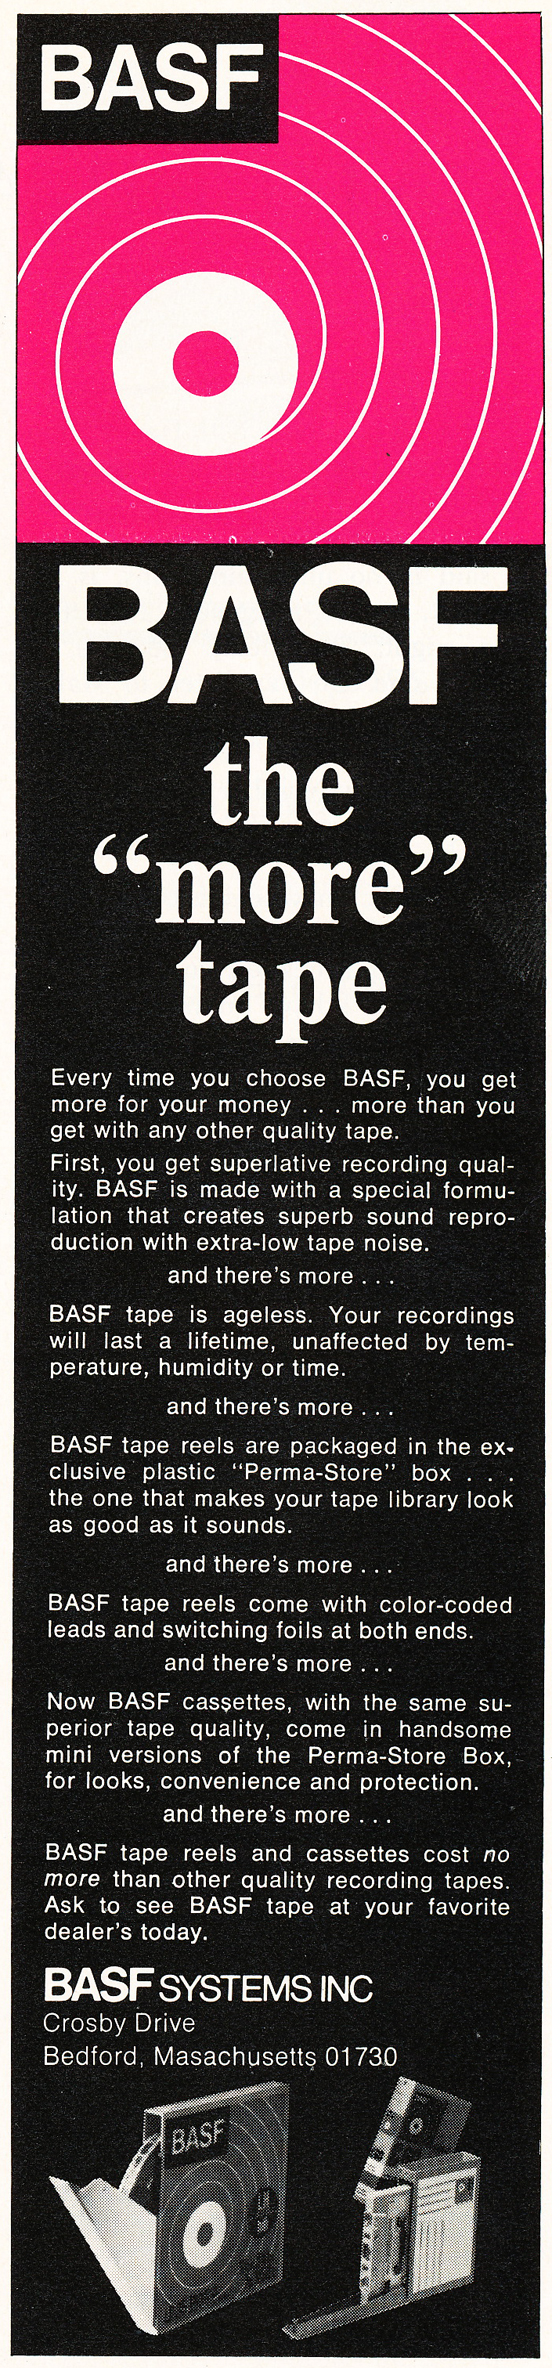 1970 ad for BASF reel to reel recording tape in Reel2ReelTexas.com's vintage recording collection